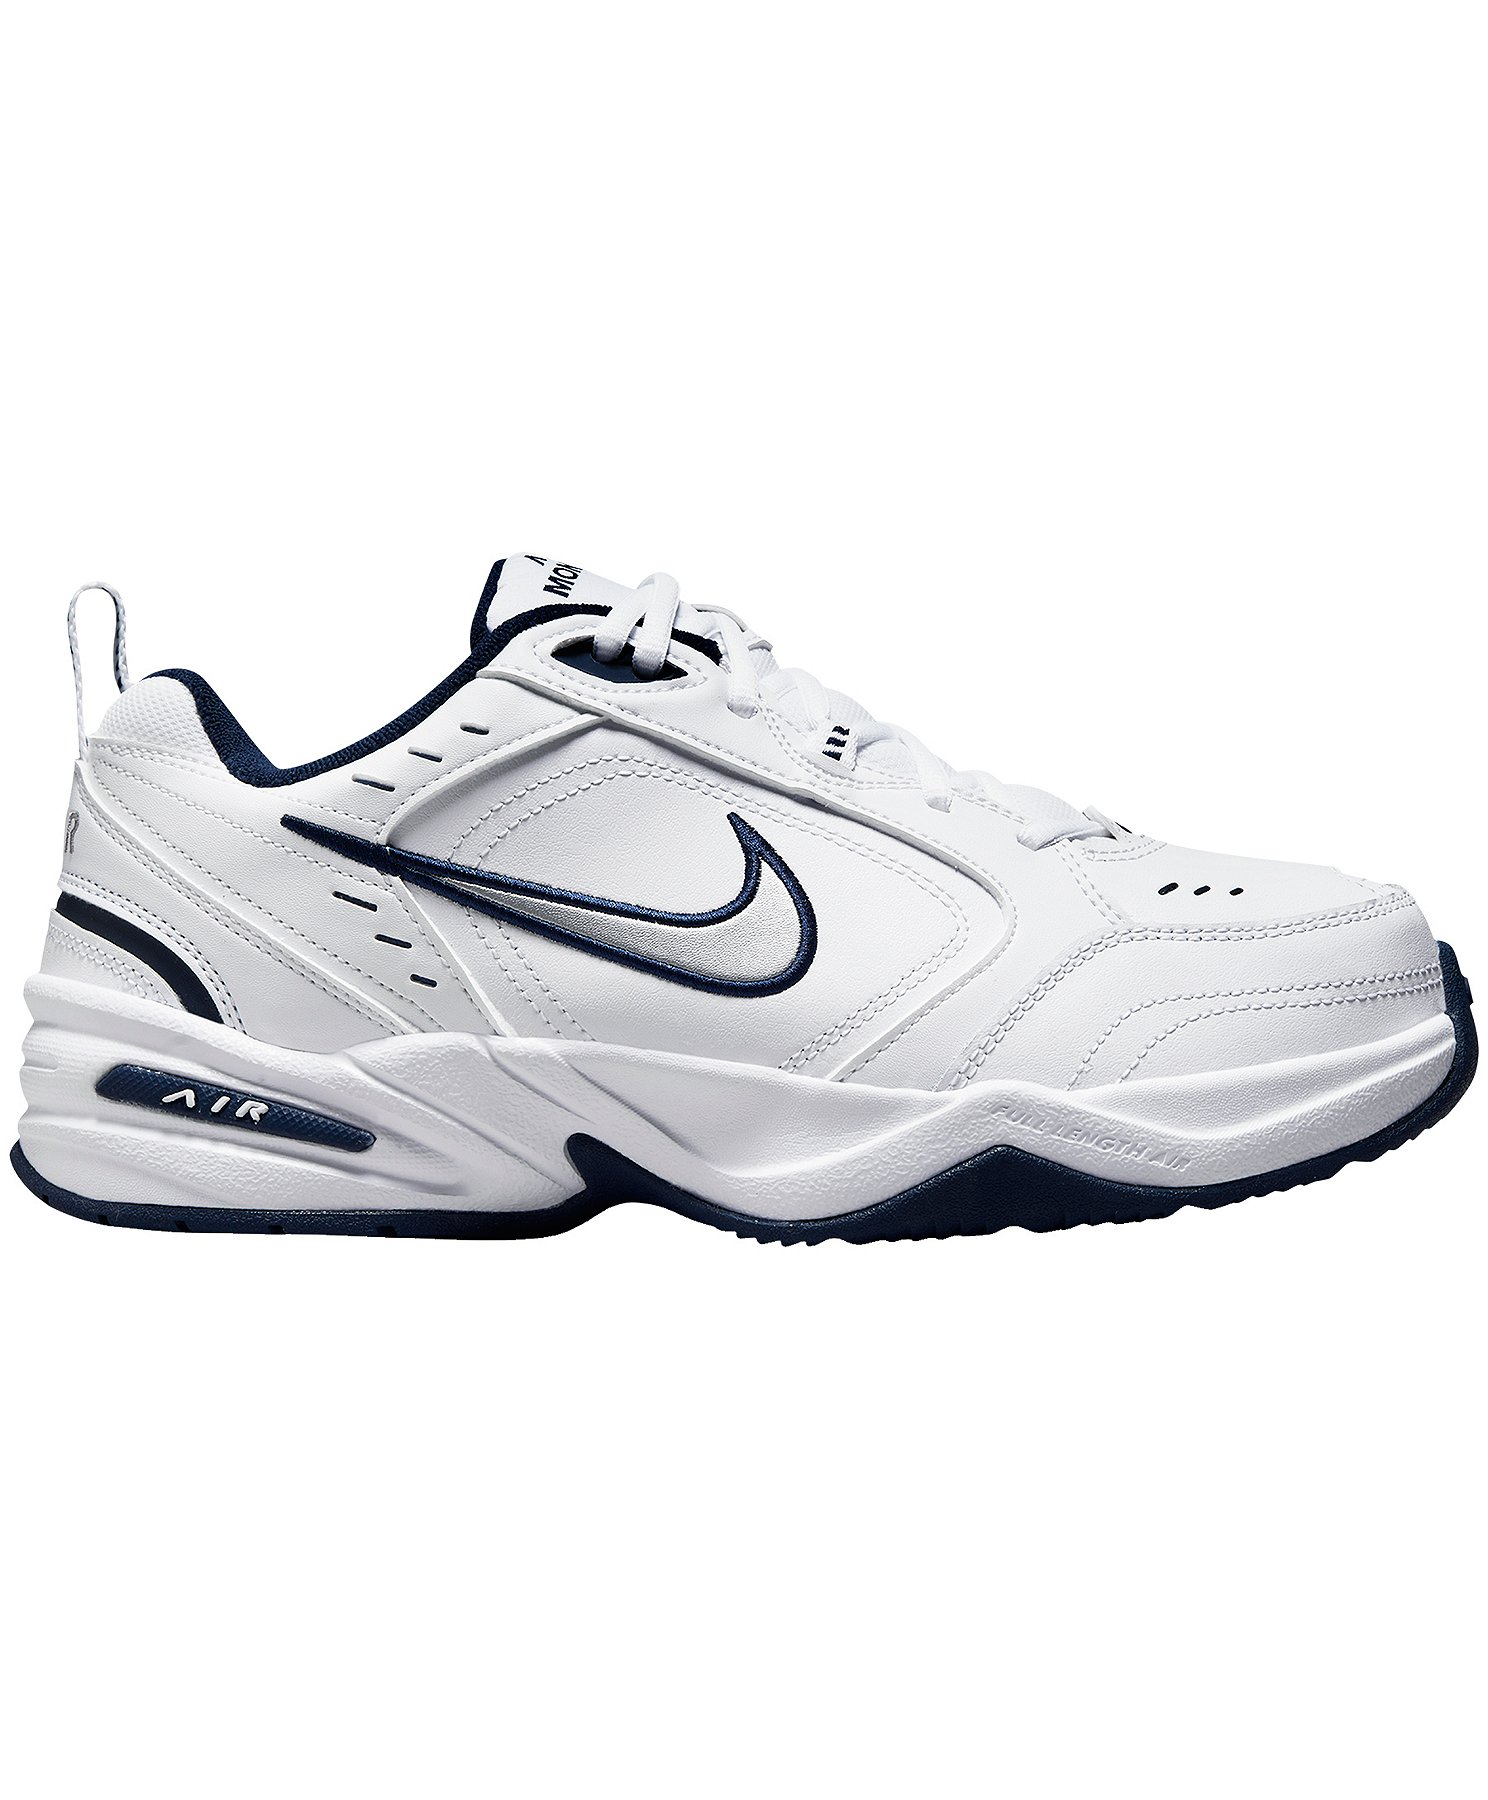 reasonably priced authorized site incredible prices Men's Nike Air Monarch IV Training Shoes - Wide 4E